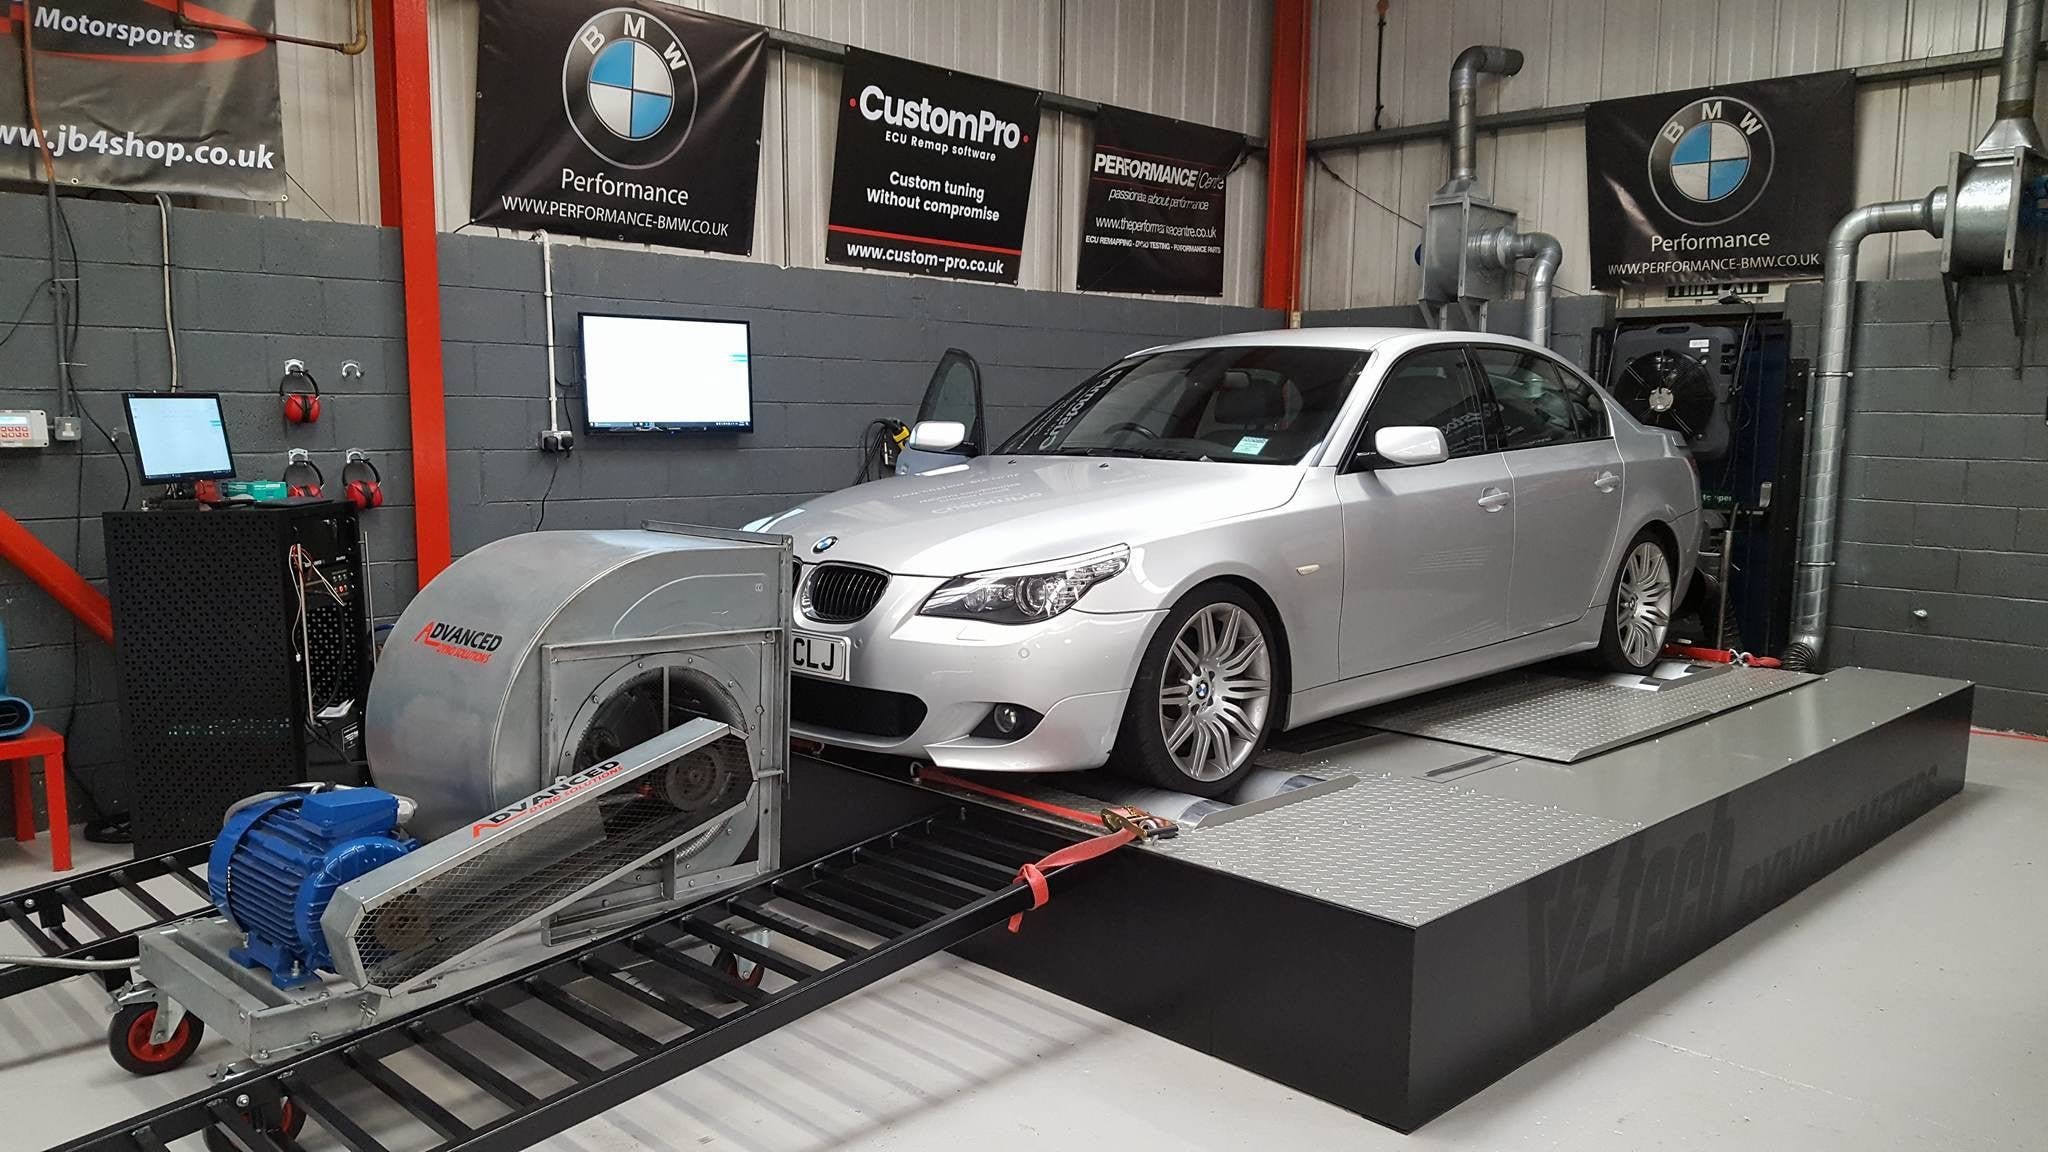 BMW 525d 3.0 197 - CustomPro remap software